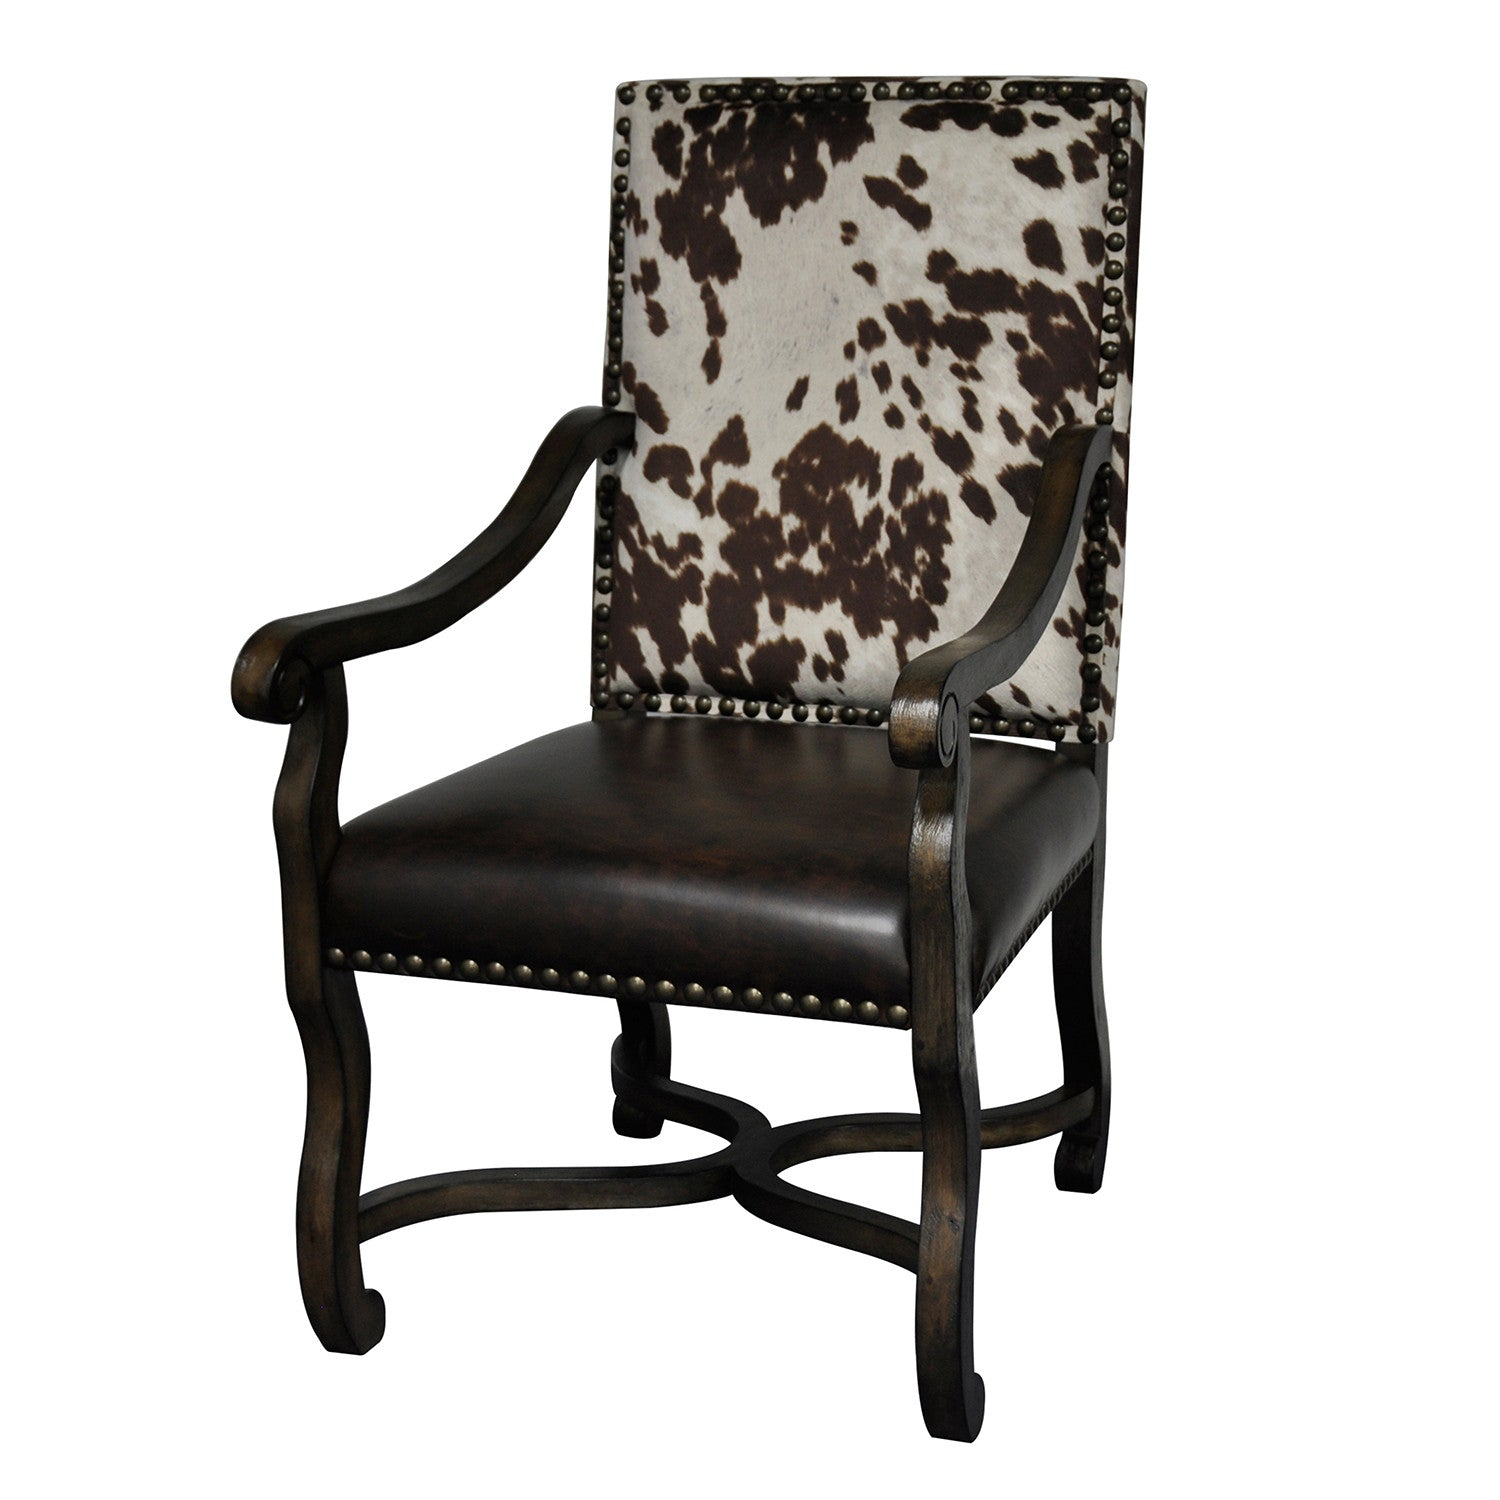 Rustic Ranch Furniture: Mesquite Ranch Leather And Faux Cowhide Armchair Cvfzr1791